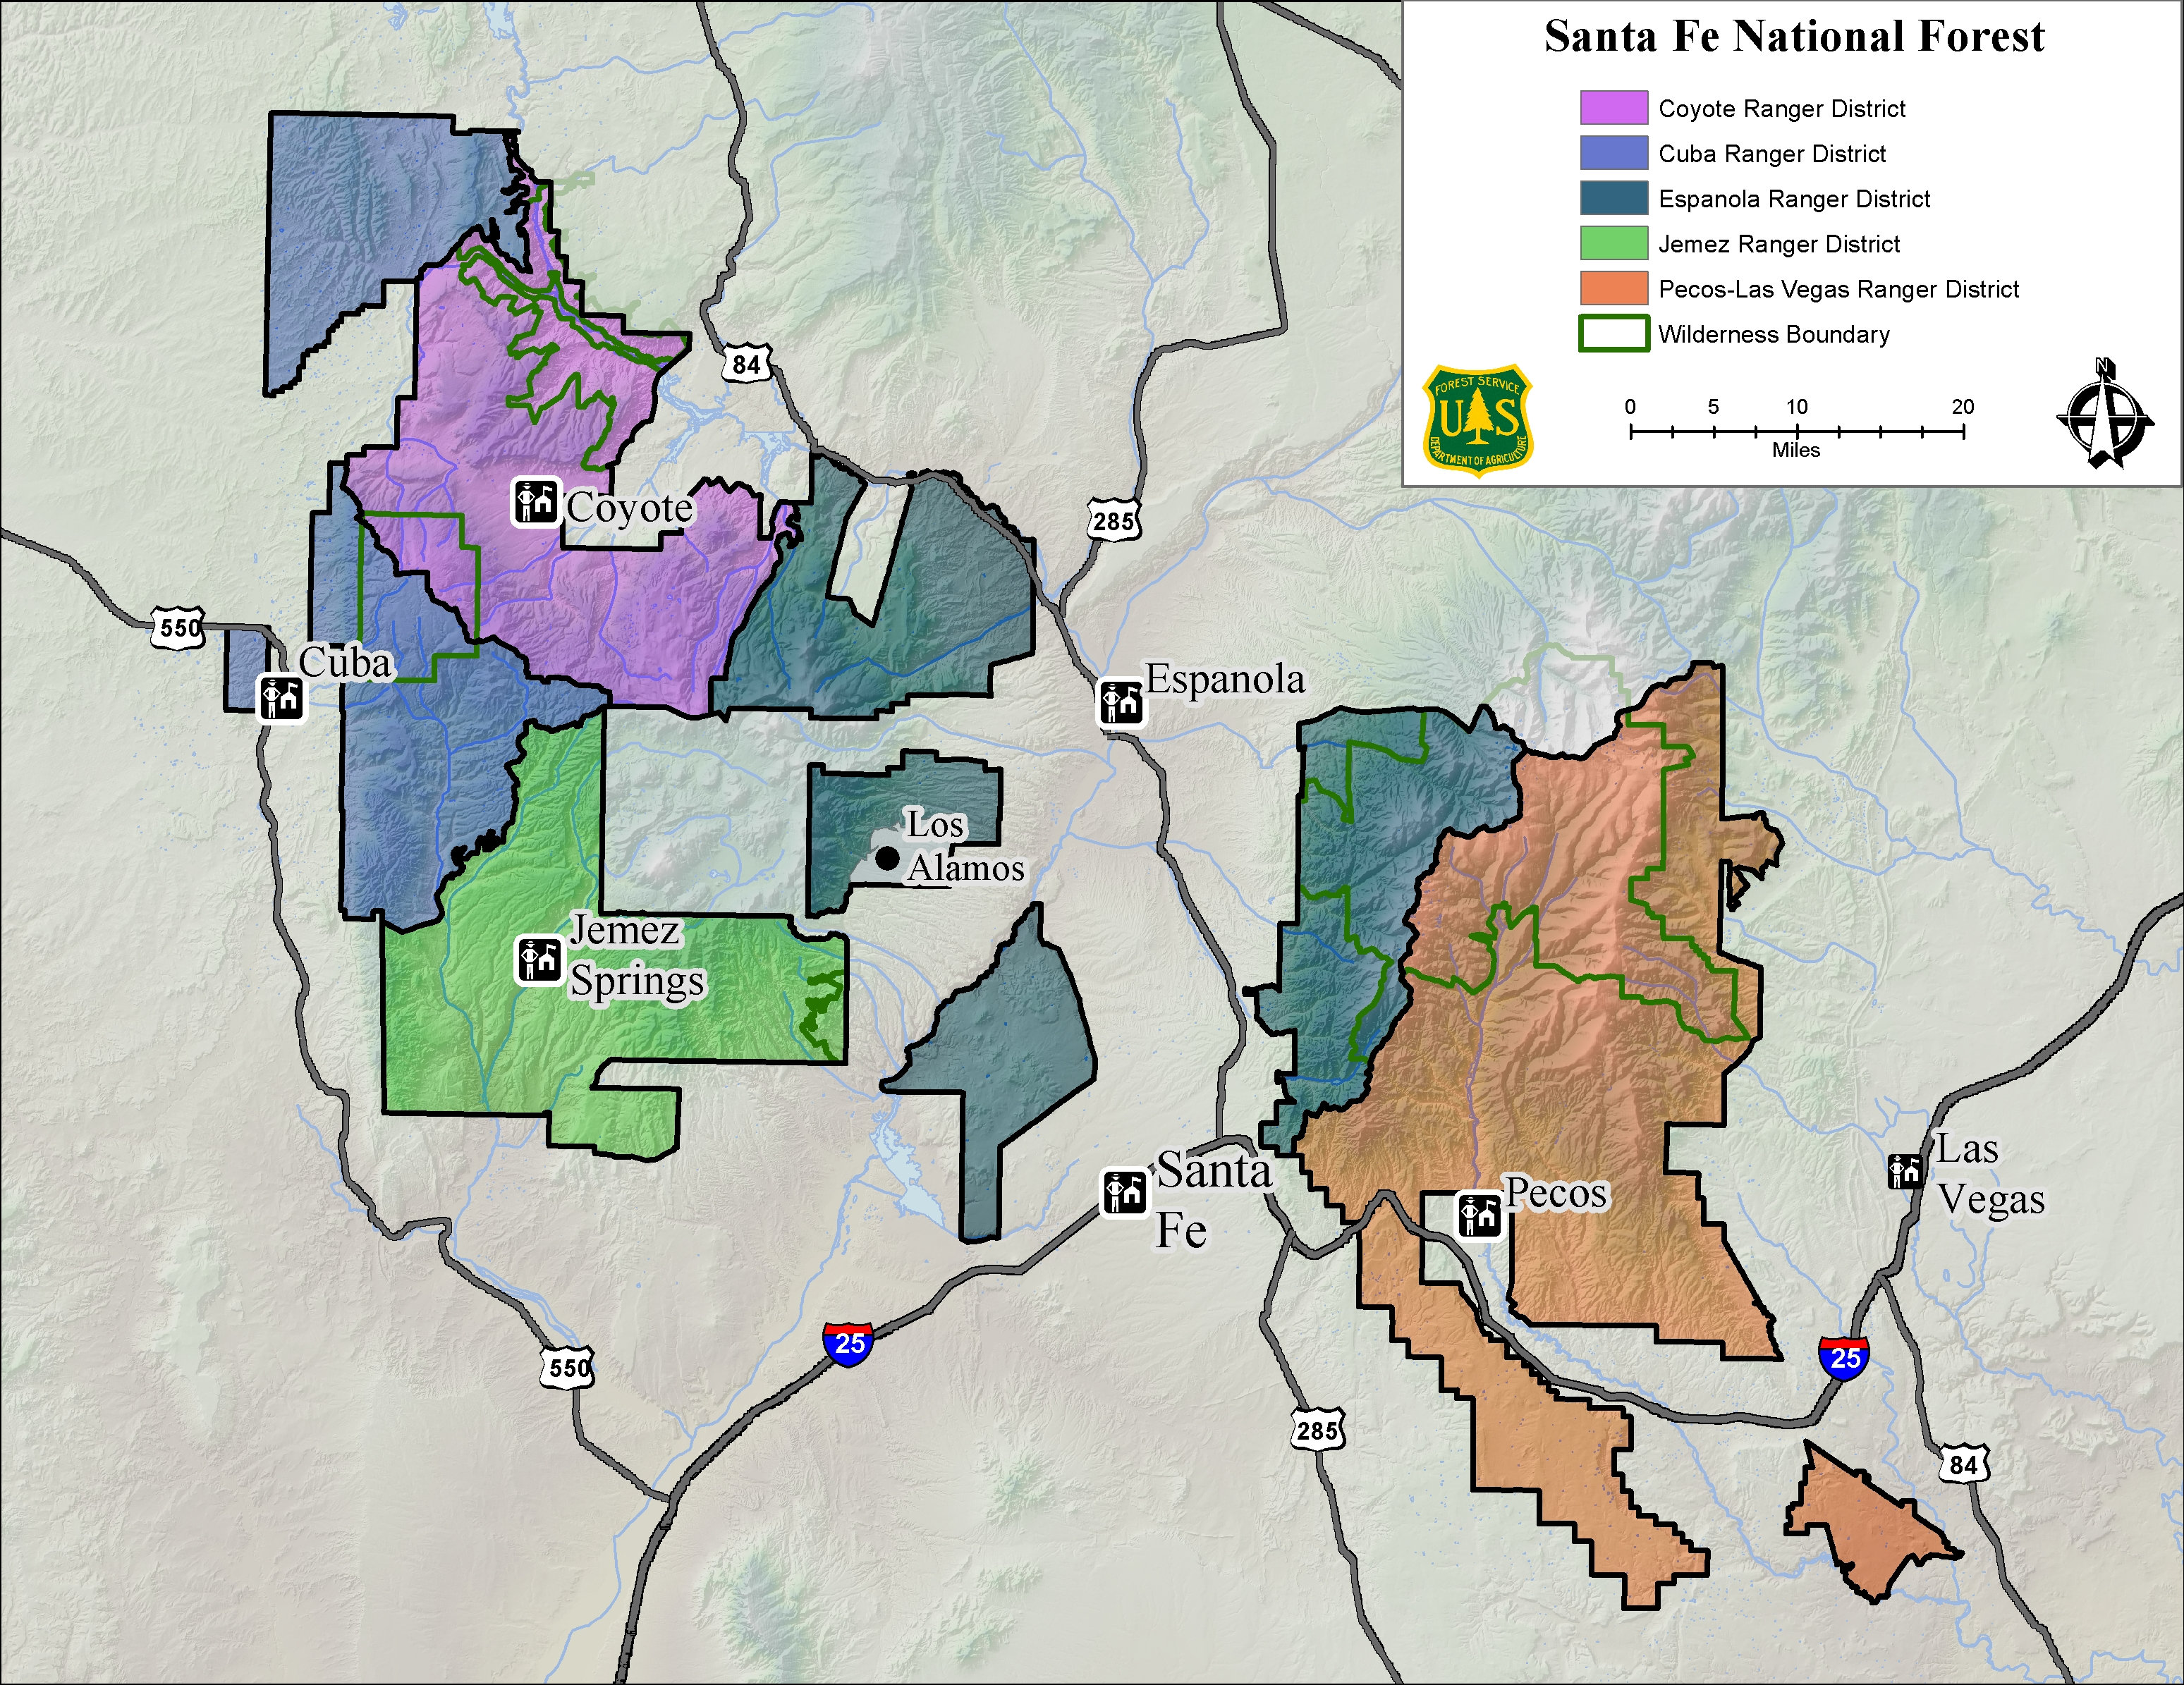 Map of Santa Fe National Forest Ranger Districts